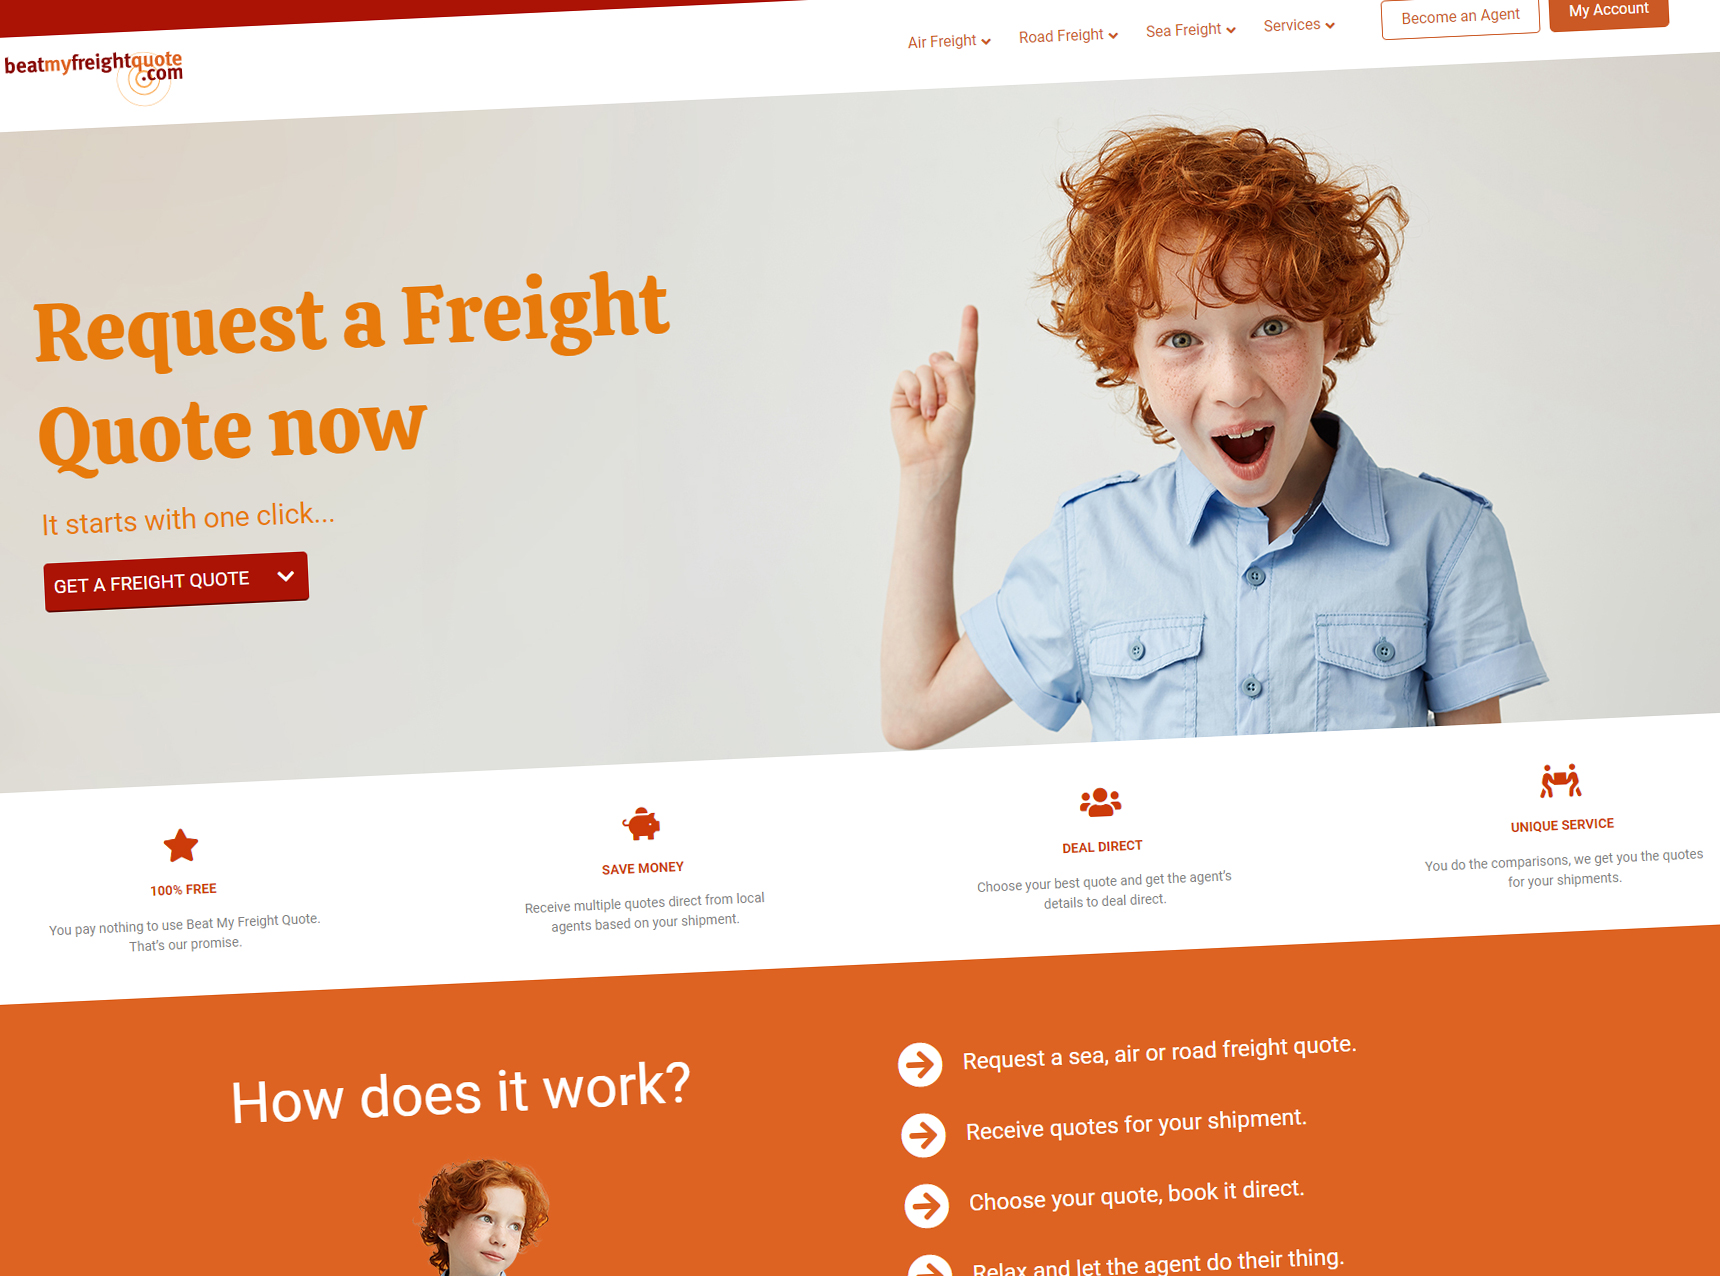 Beat My Freight Quote Website